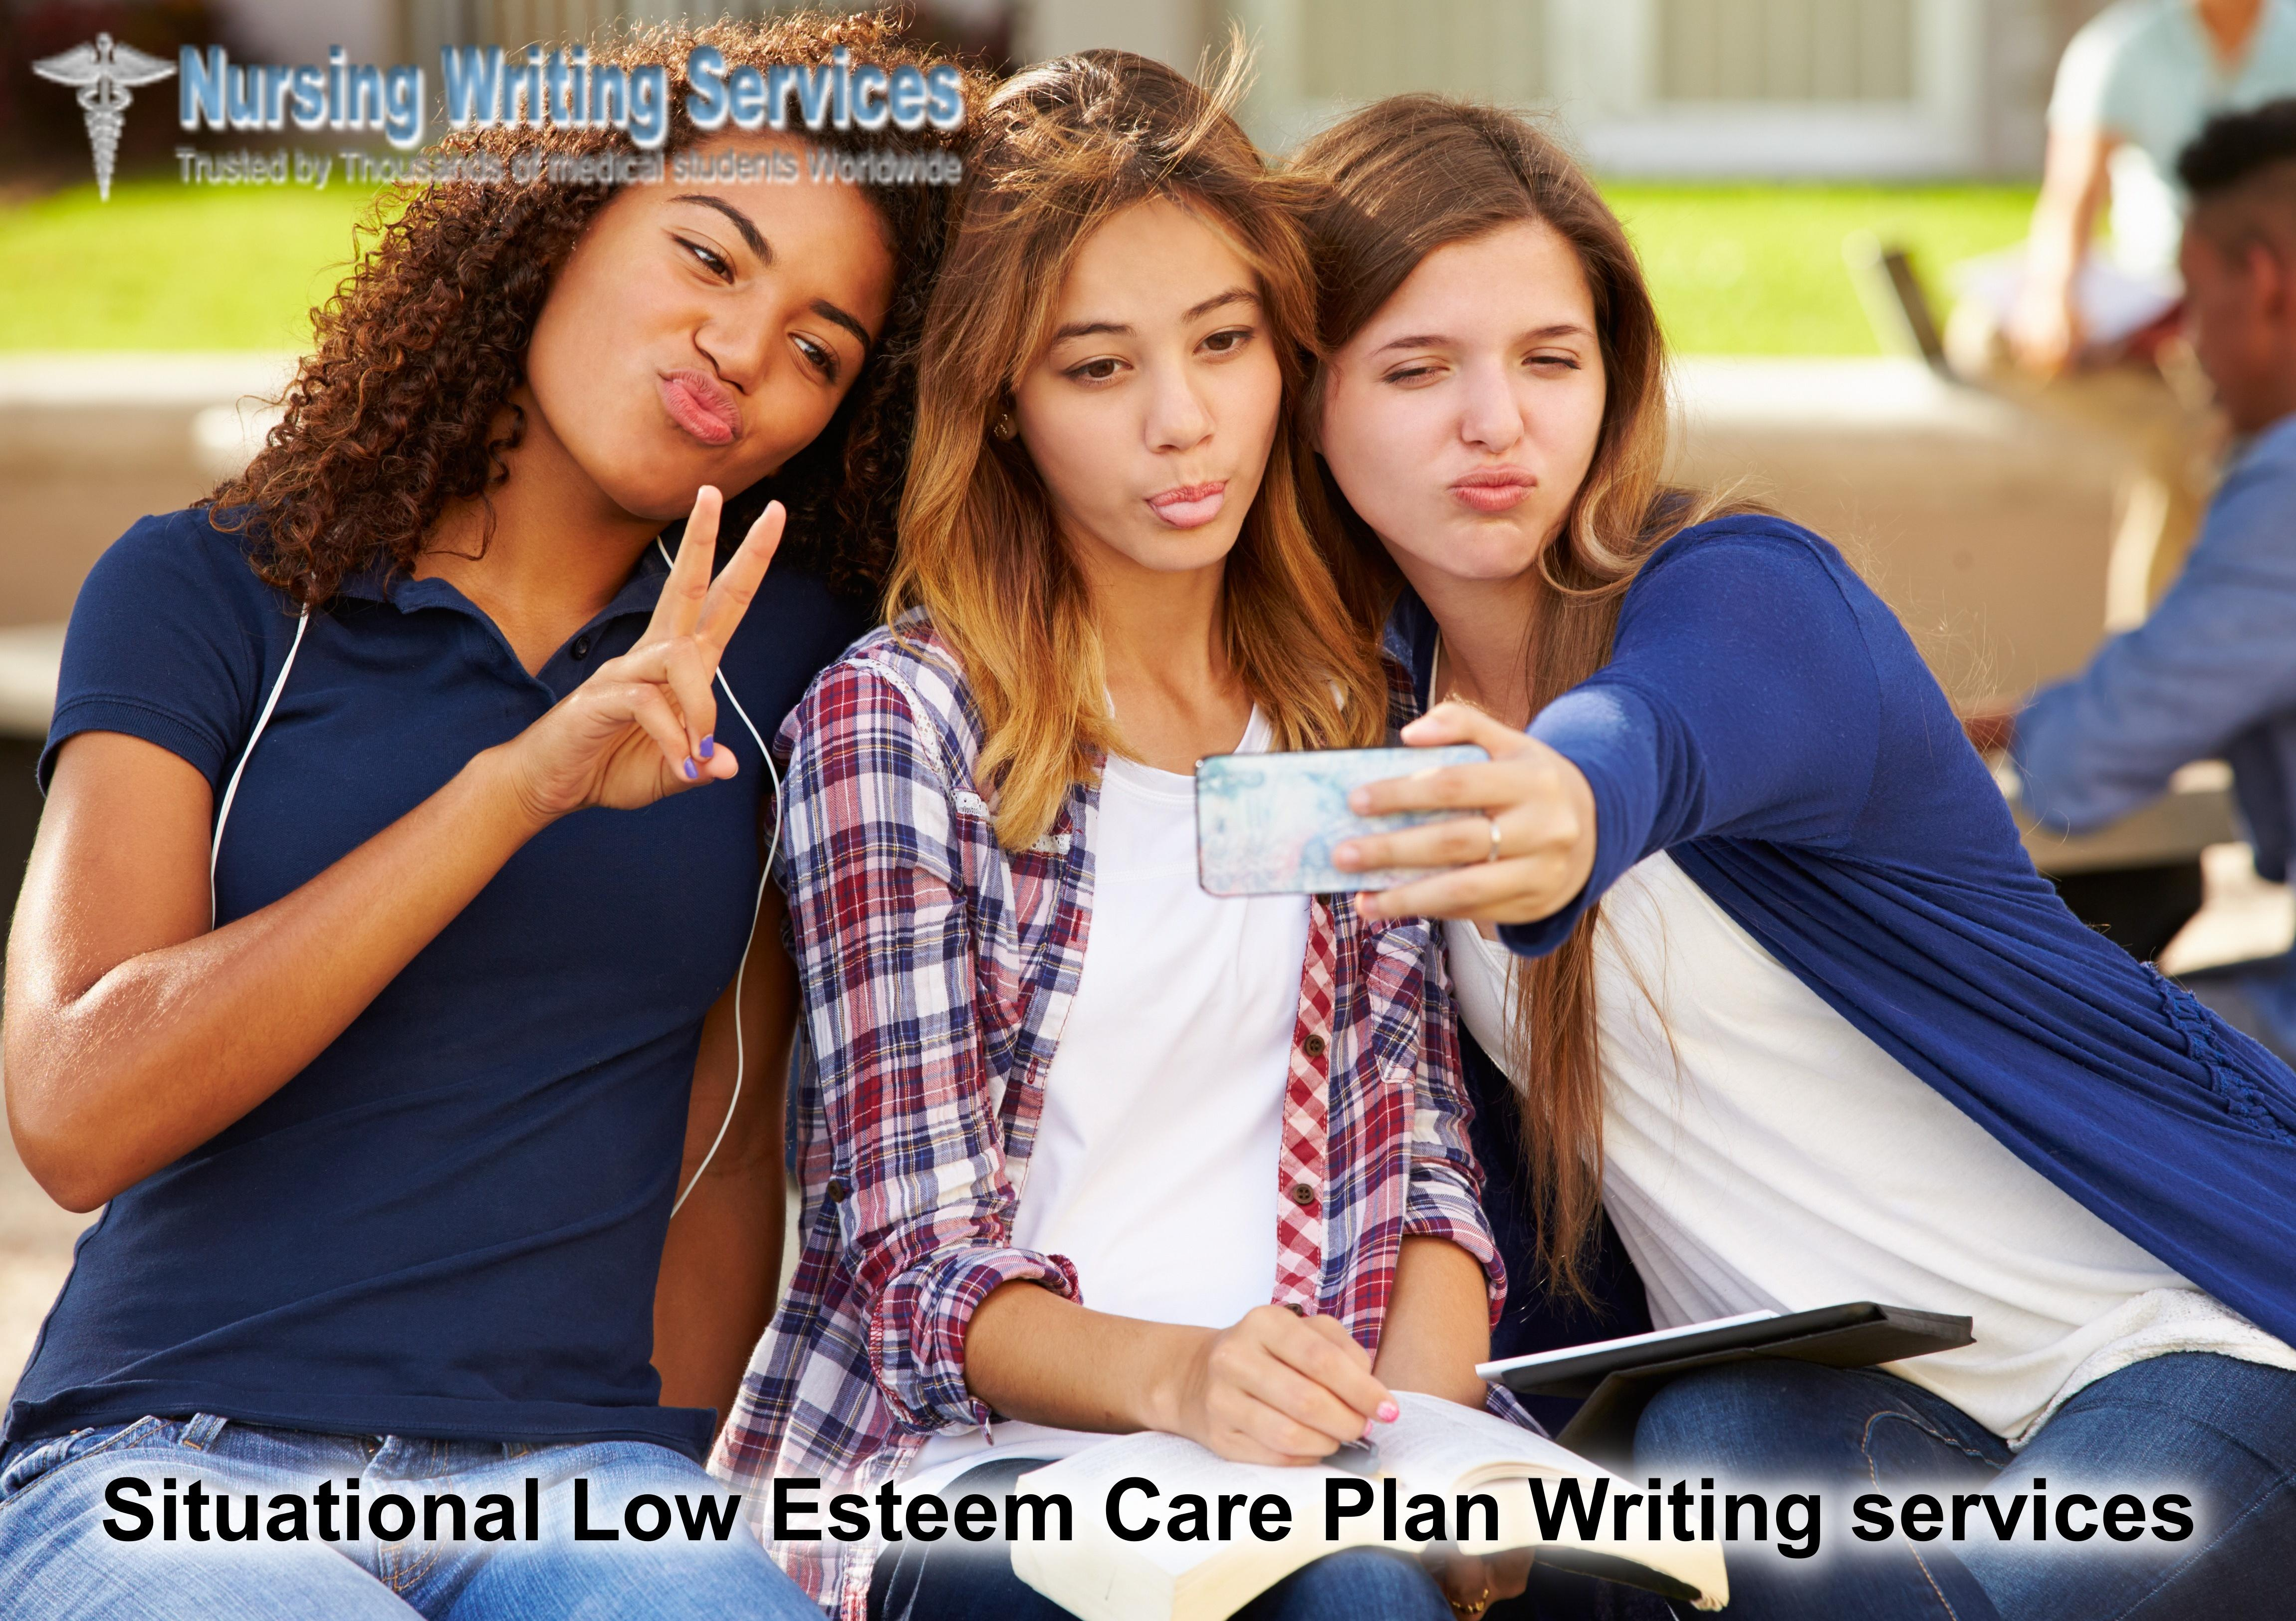 Situational Low Esteem Care Plan Writing Services